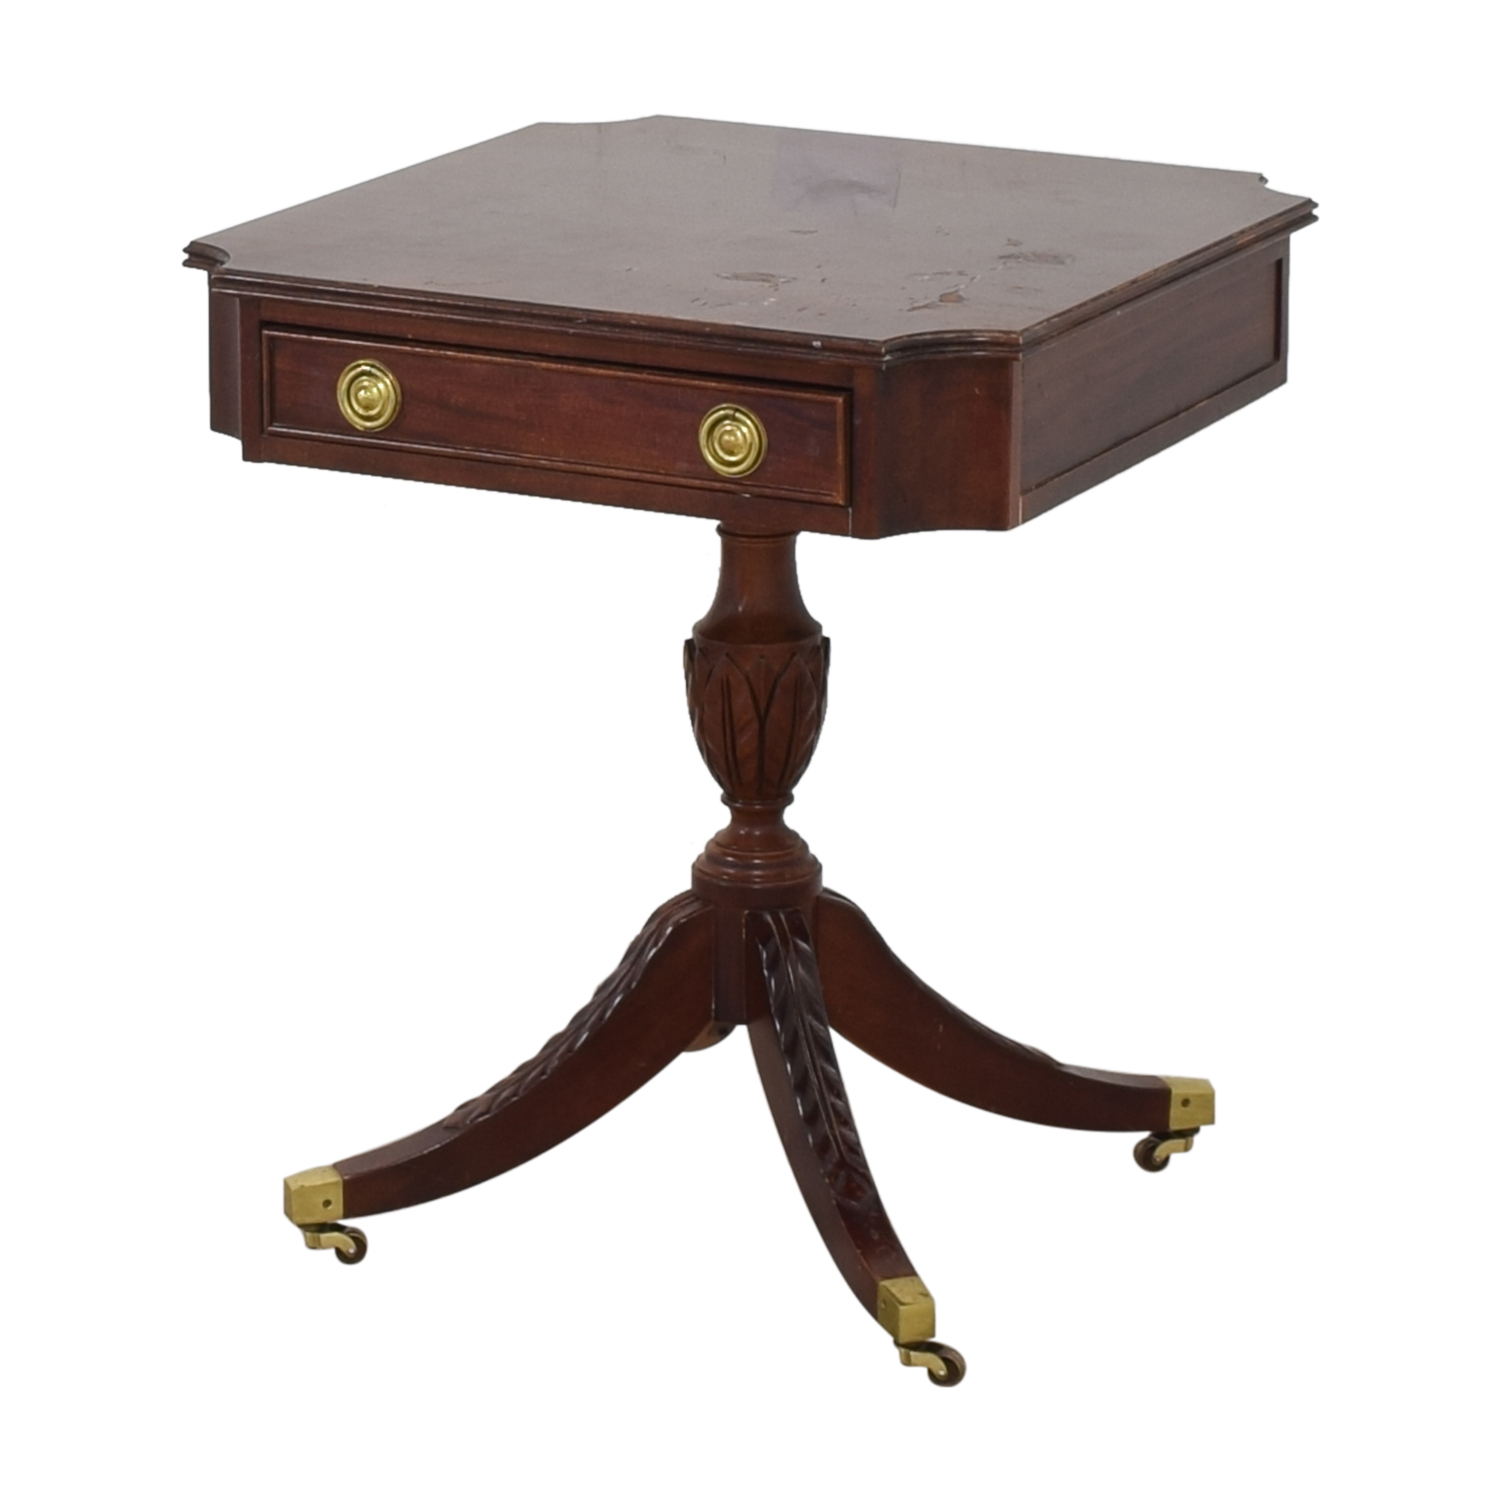 Century Furniture Century Furniture End Table dimensions